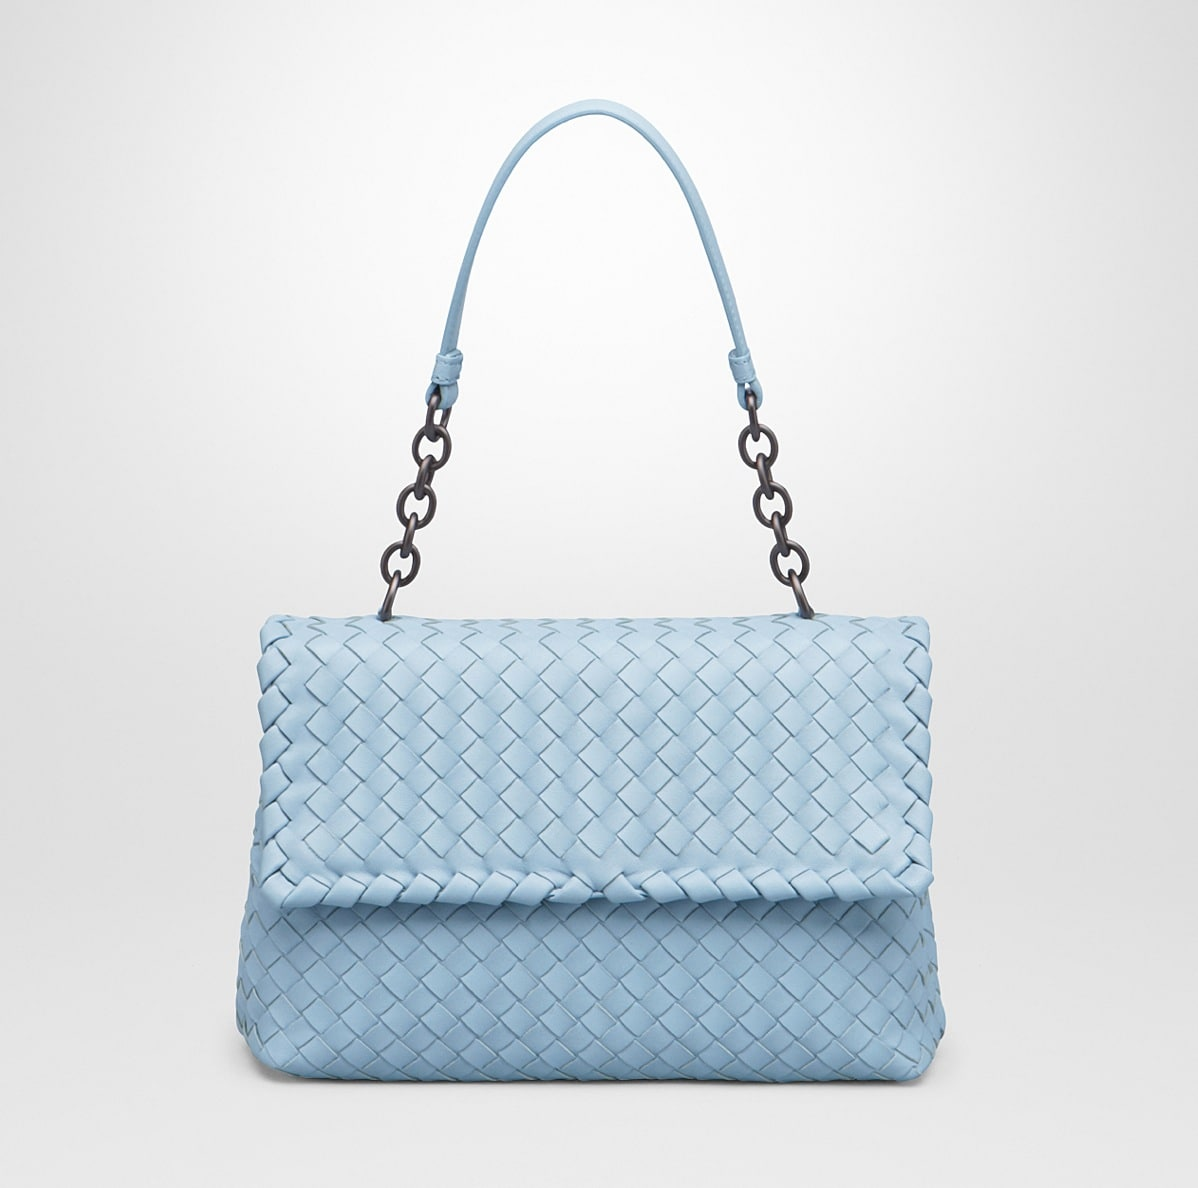 3586fdd91 Bottega Veneta Cruise 2015 Bag Collection and new Glimmer Hobo ...